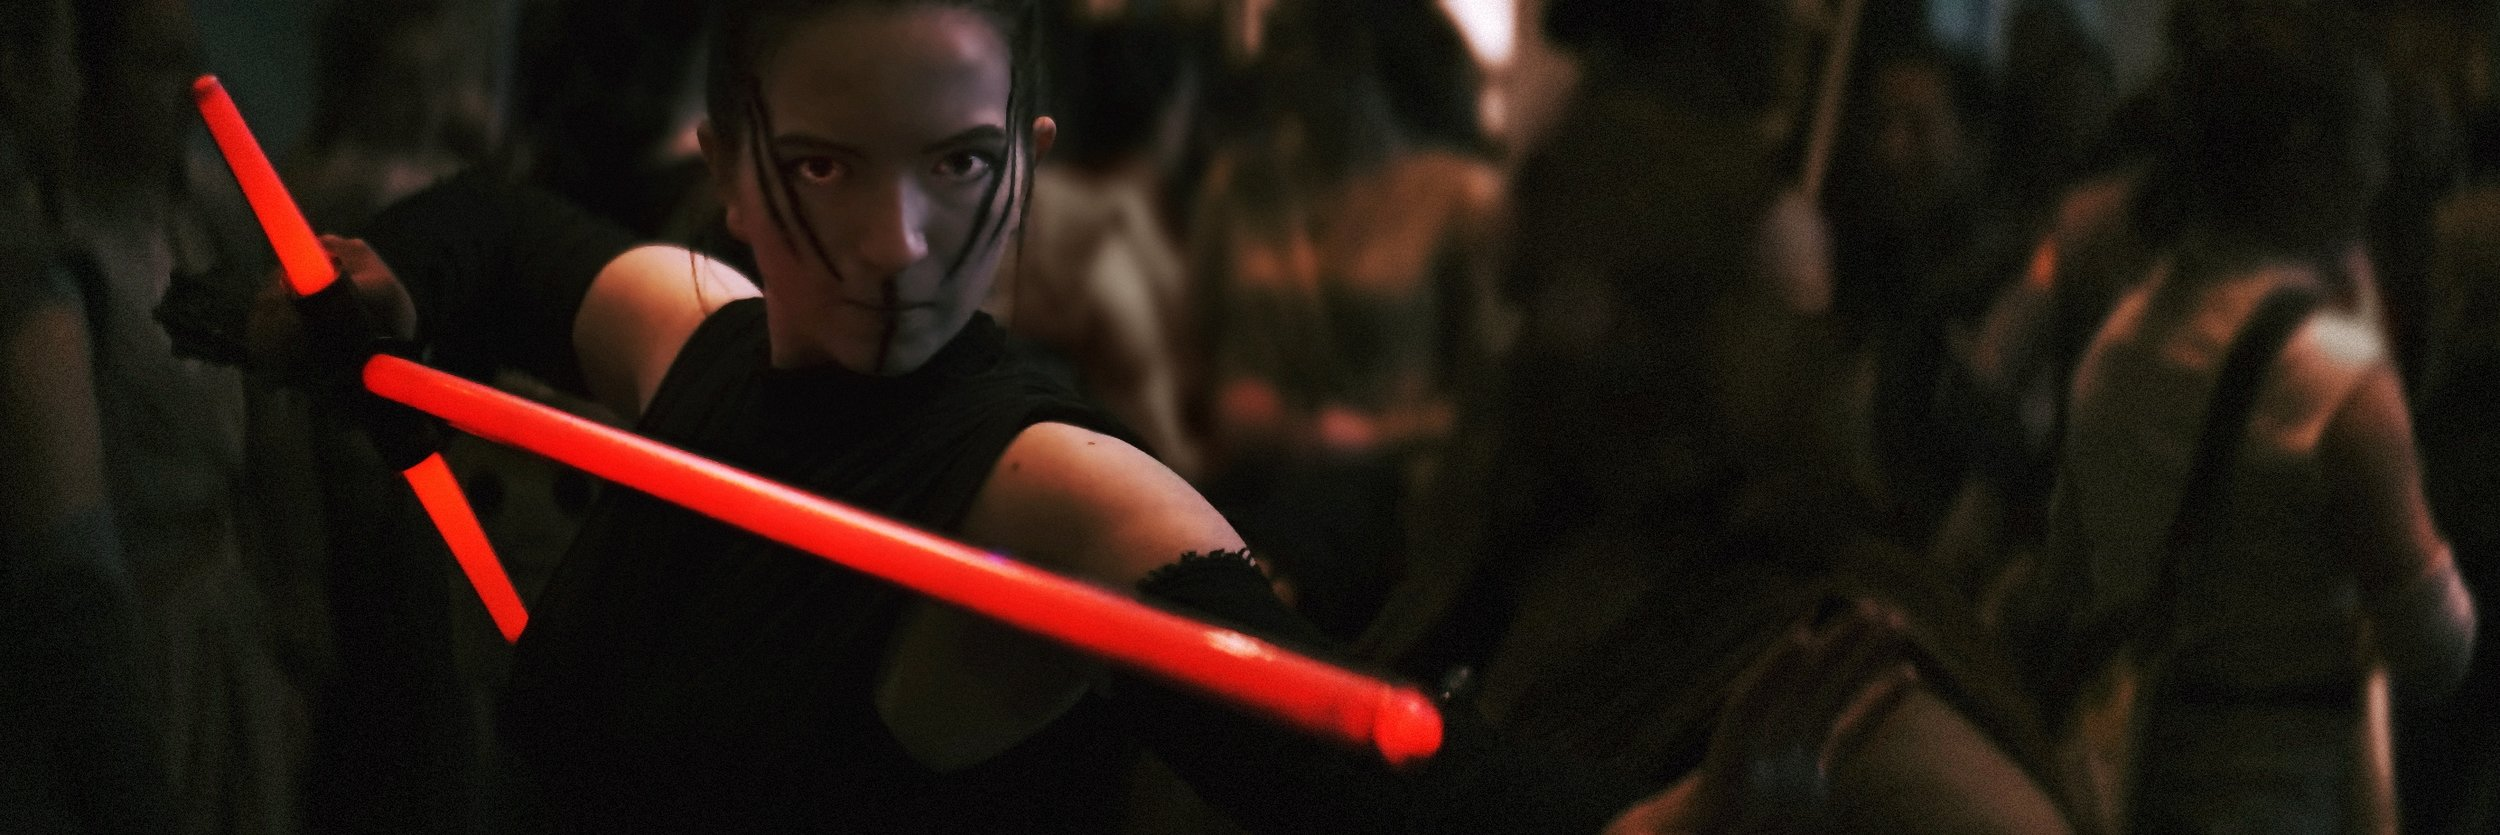 Lomo 75mm Anamorphic Lens | Star Wars Celebration Chicago - SWCC | Dark Rey at the Rey photo op, McCormick Place - Photo by: Keith Nickoson